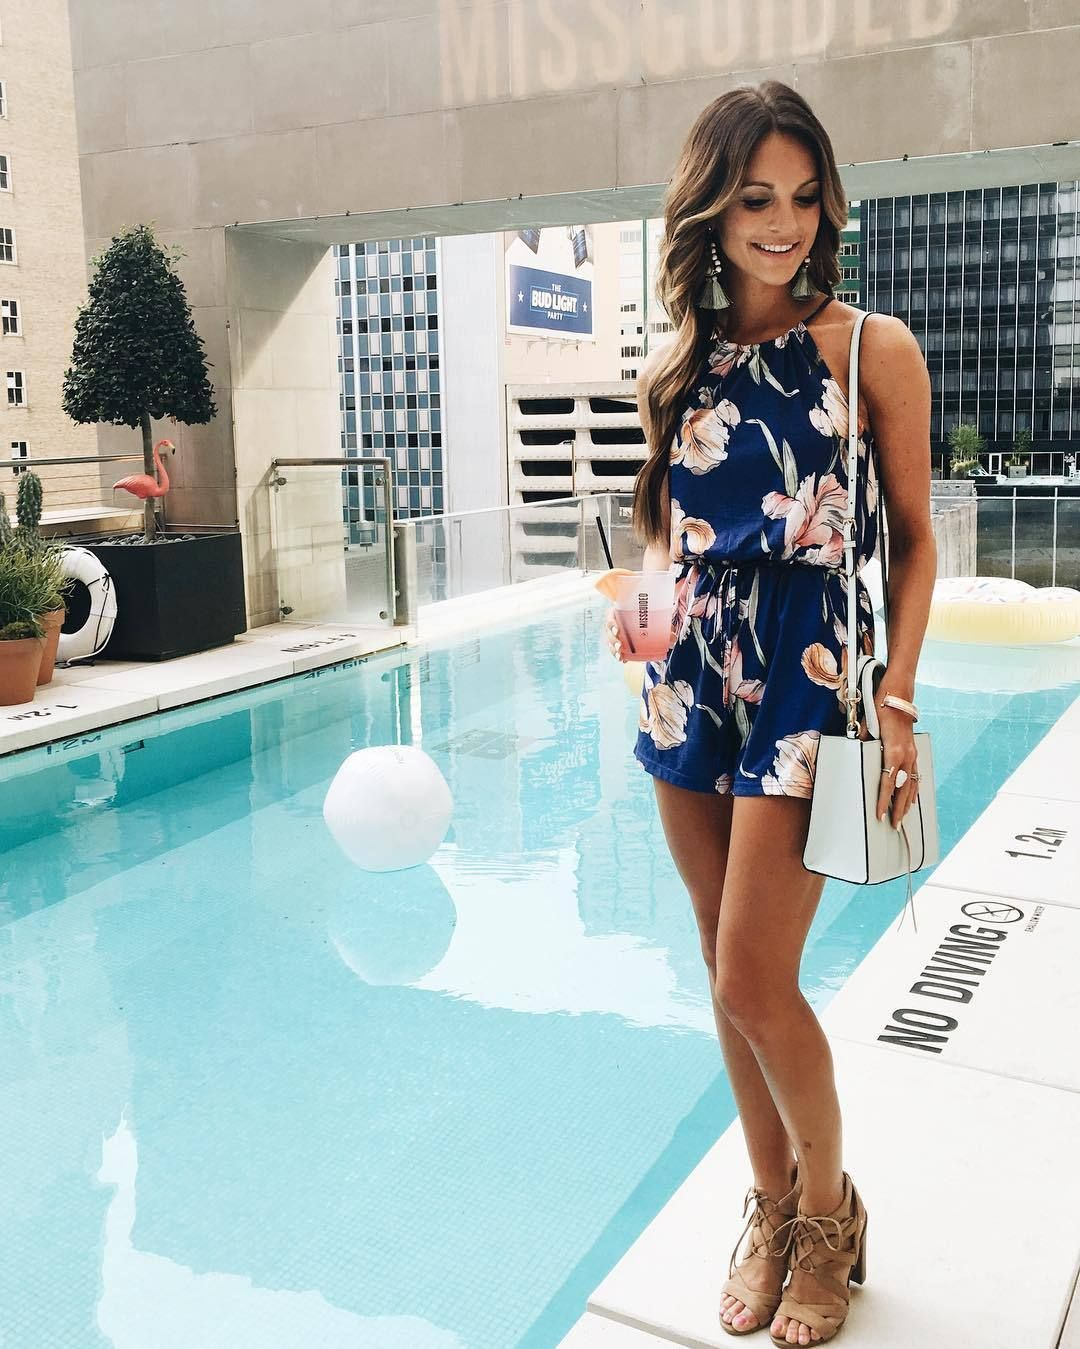 Funky Pool Party Dress Code Image Collection - Wedding Dress Ideas ...